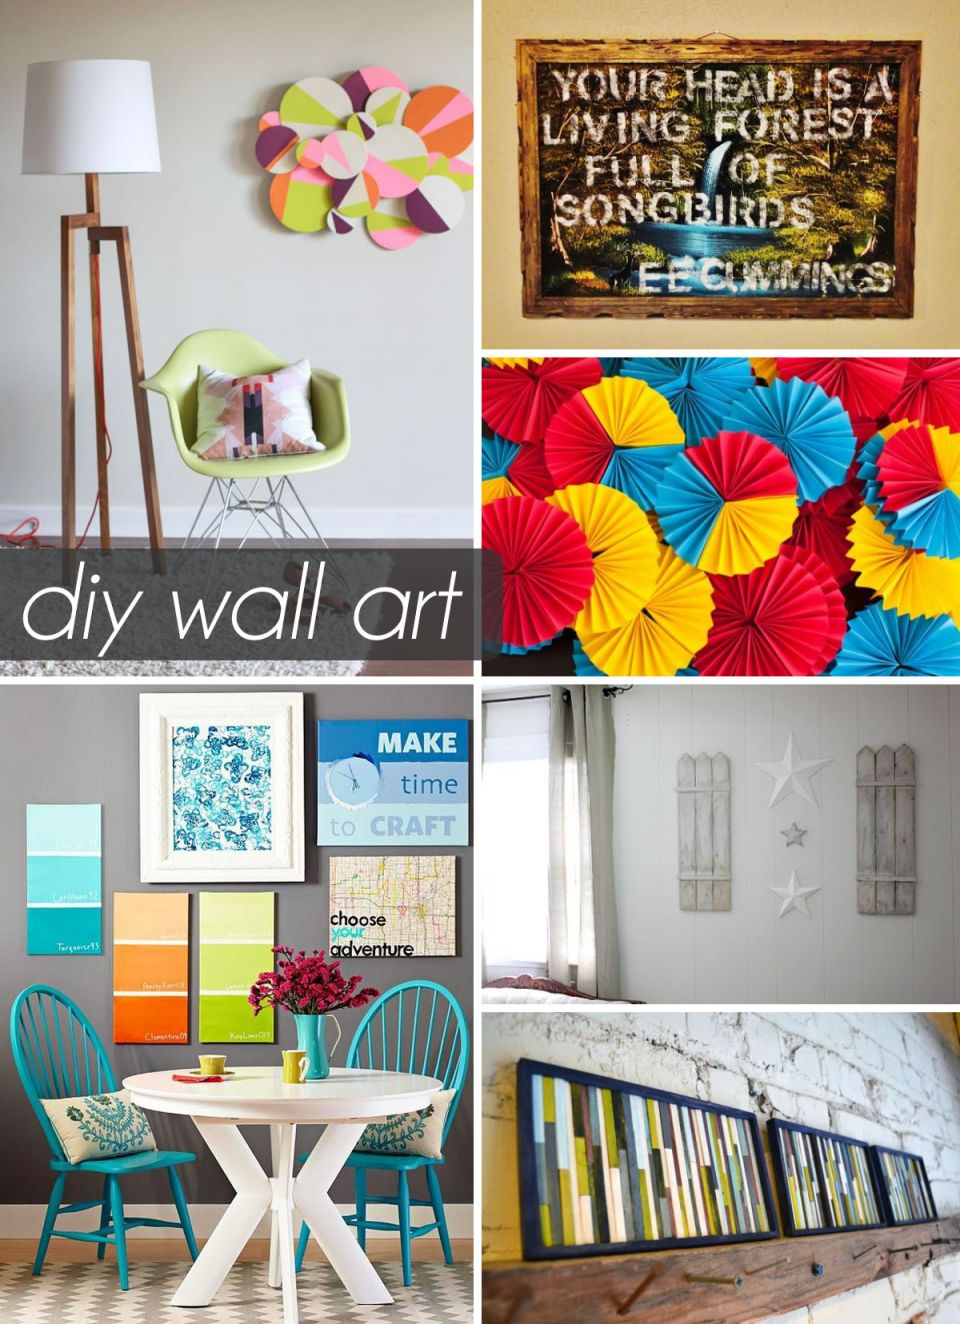 Top homemade wall decoration ideas